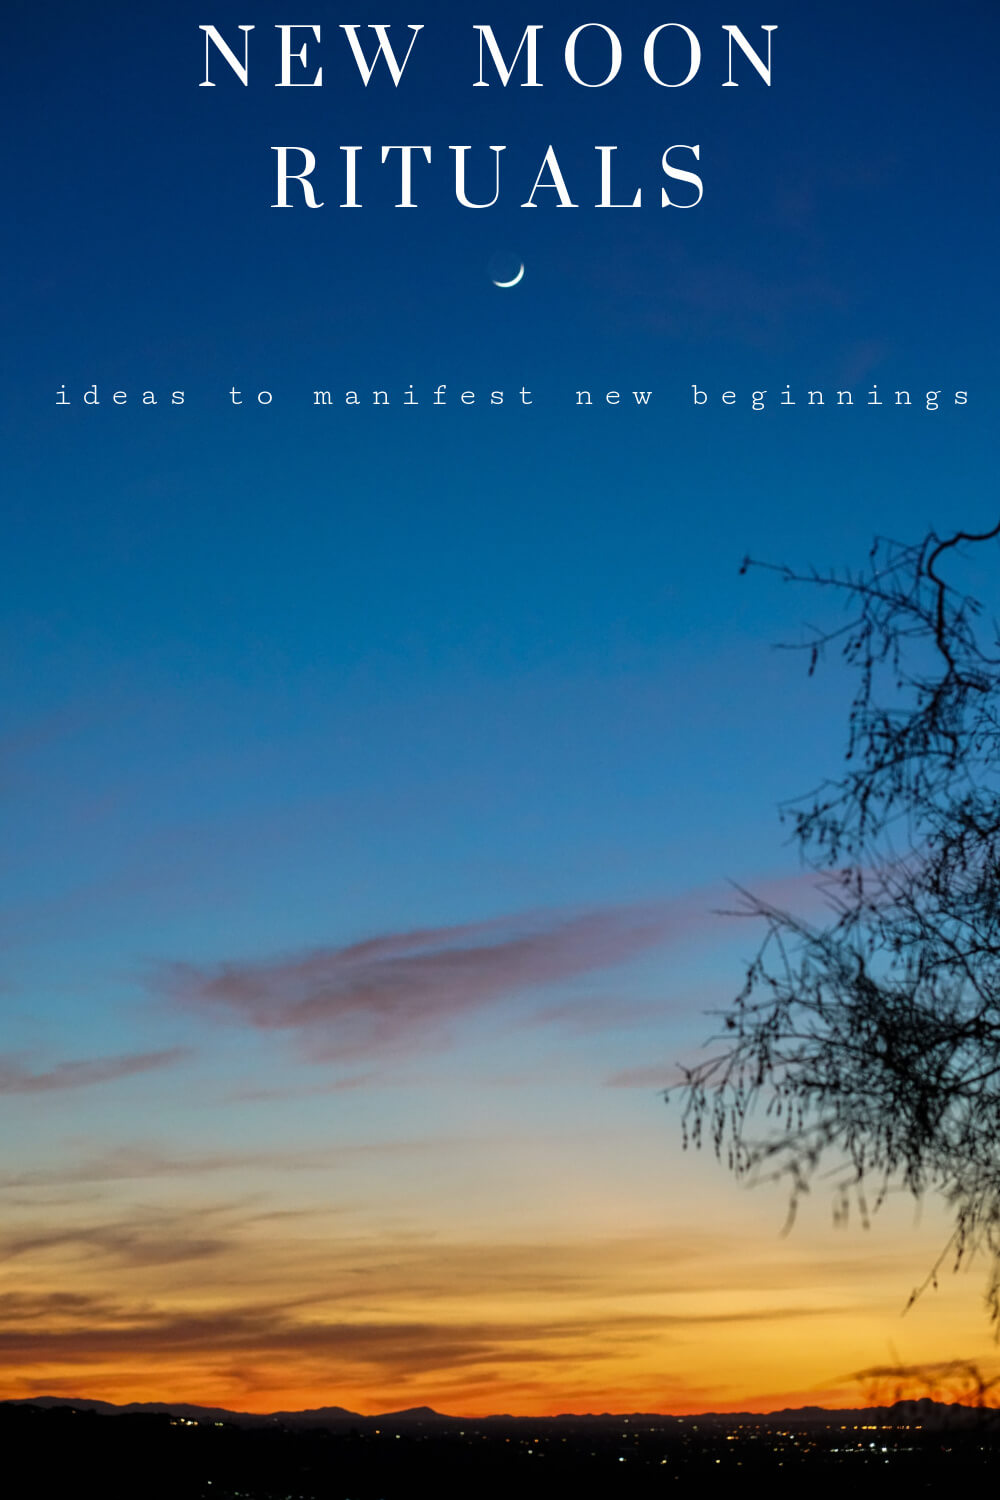 """A beautiful sunset photo with a new moon at the top. Text overlay reads, """"new moon rituals. Ideas to manifest new beginnings"""""""